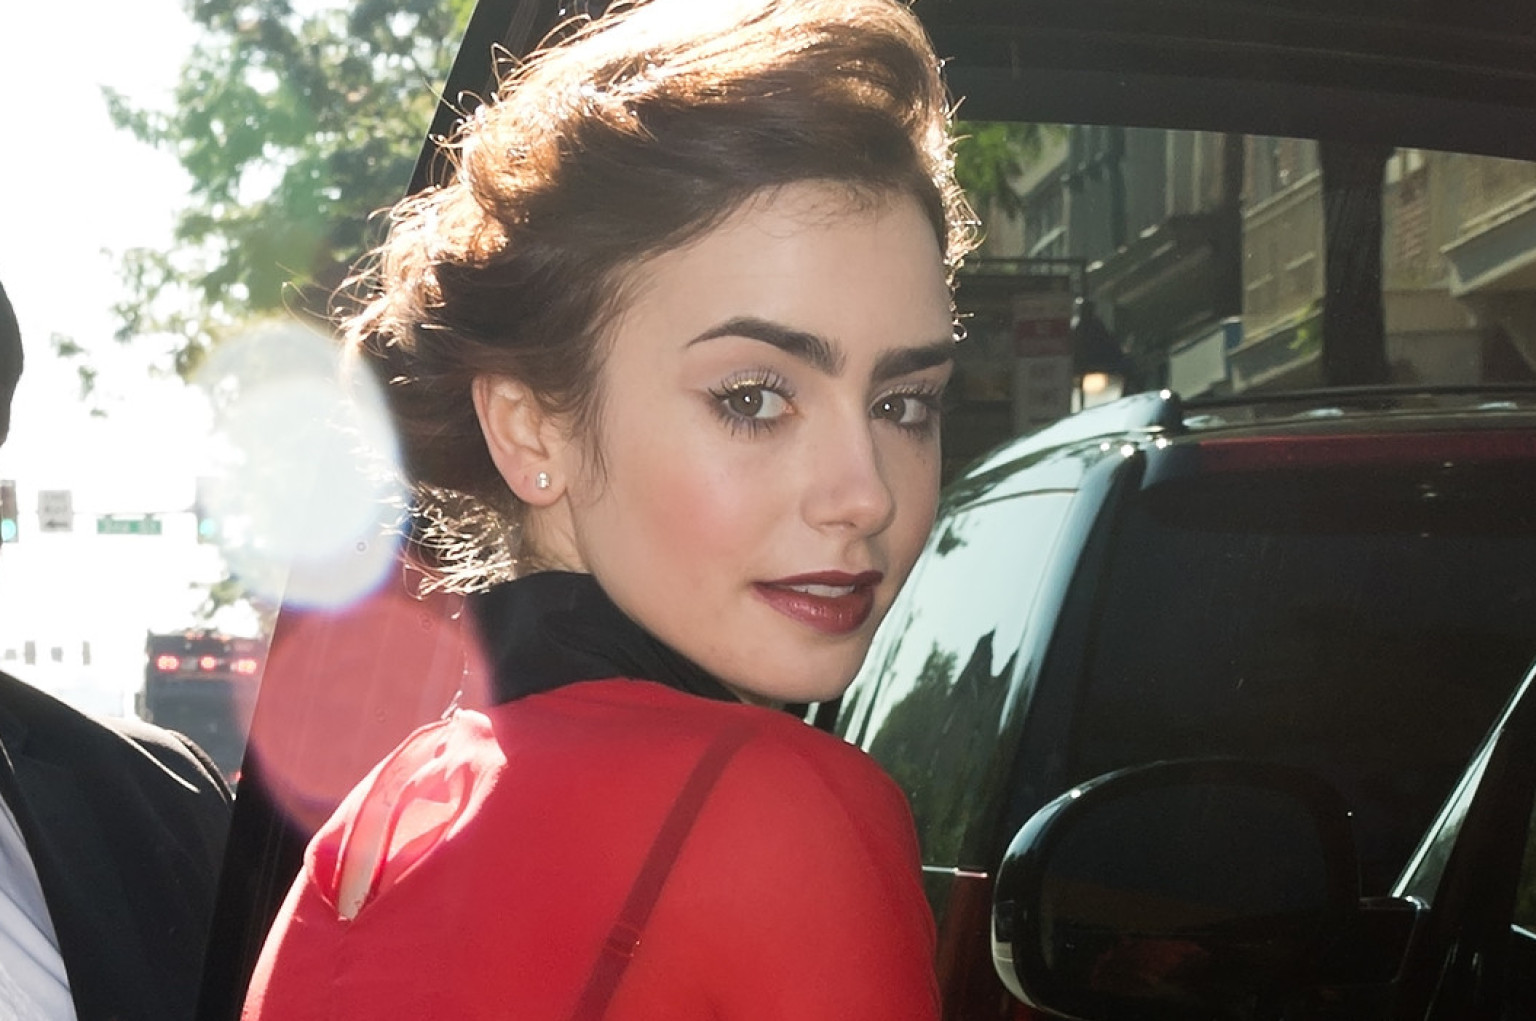 Lily Collins' Boots Are A Stylish Nod To 'Pretty Woman' (PHOTOS)